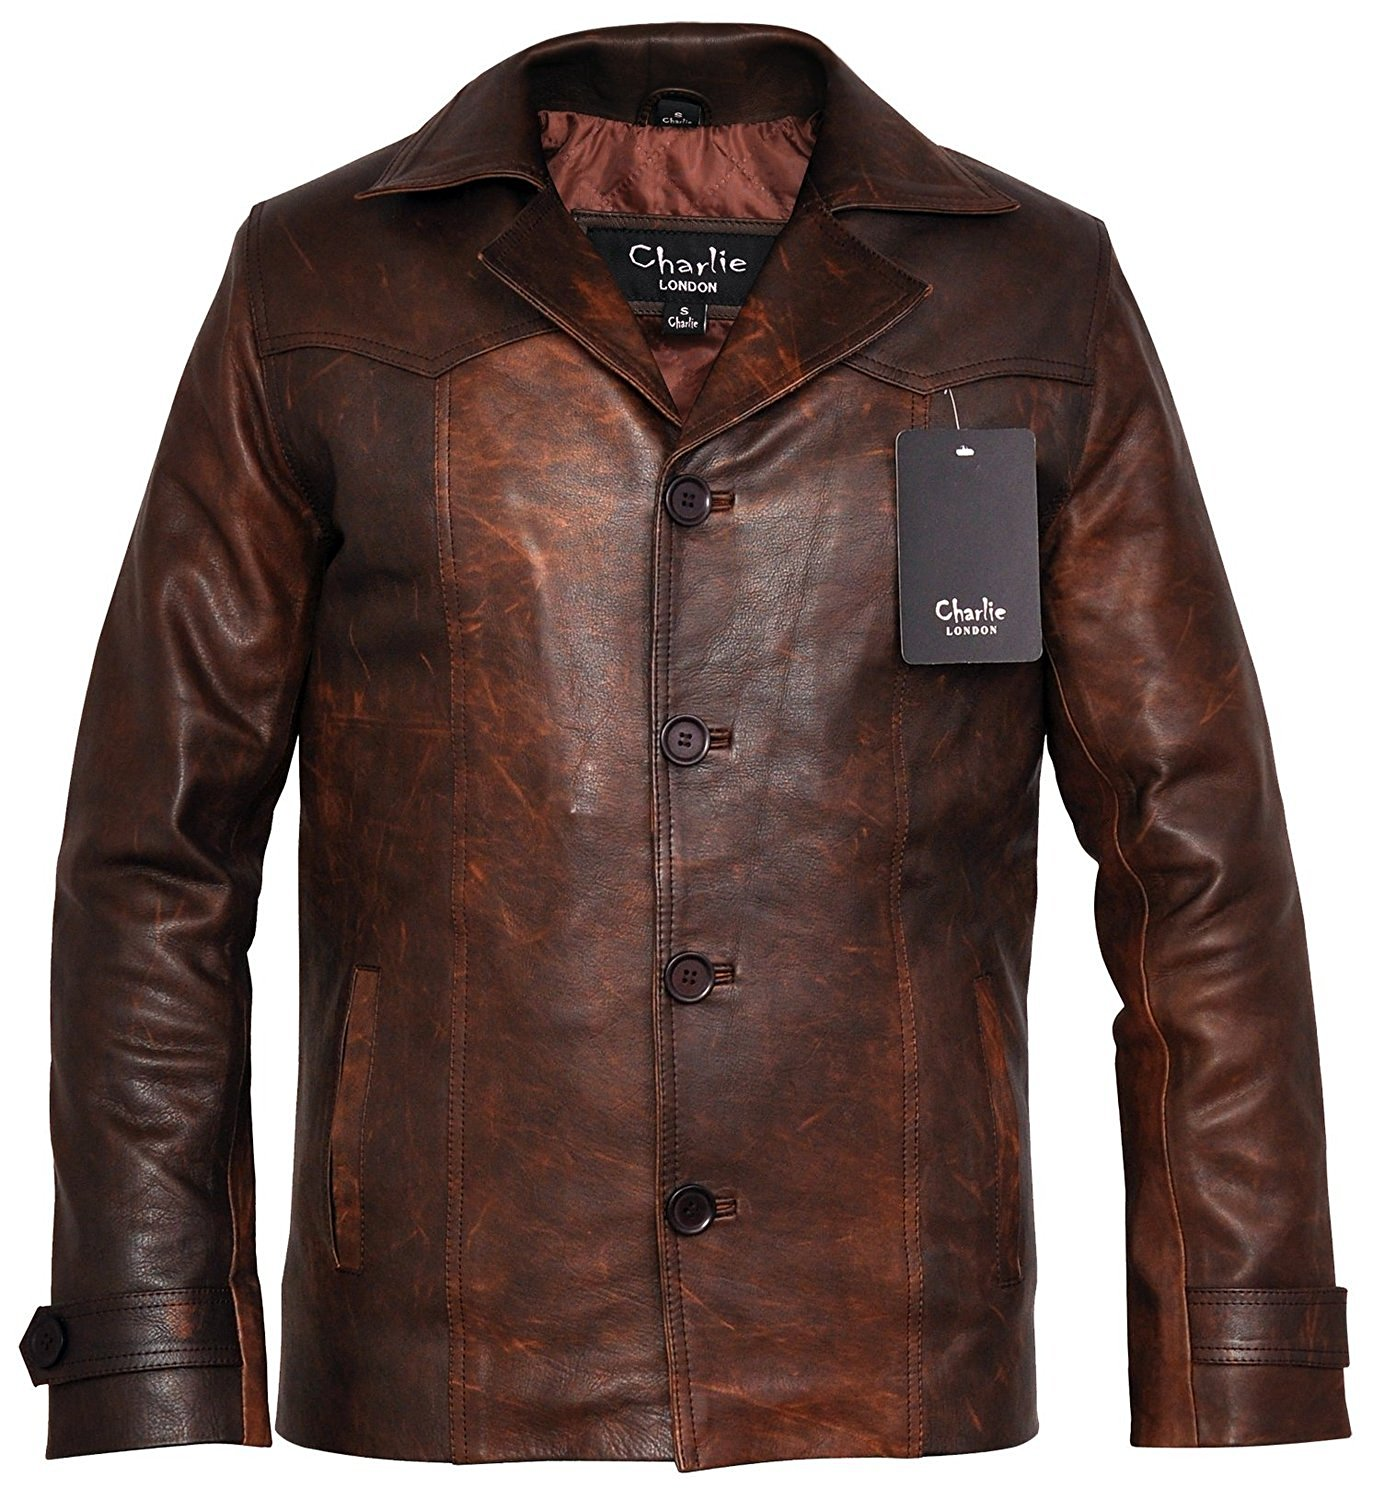 Heist Antique Vintage Brown Leather Jacket